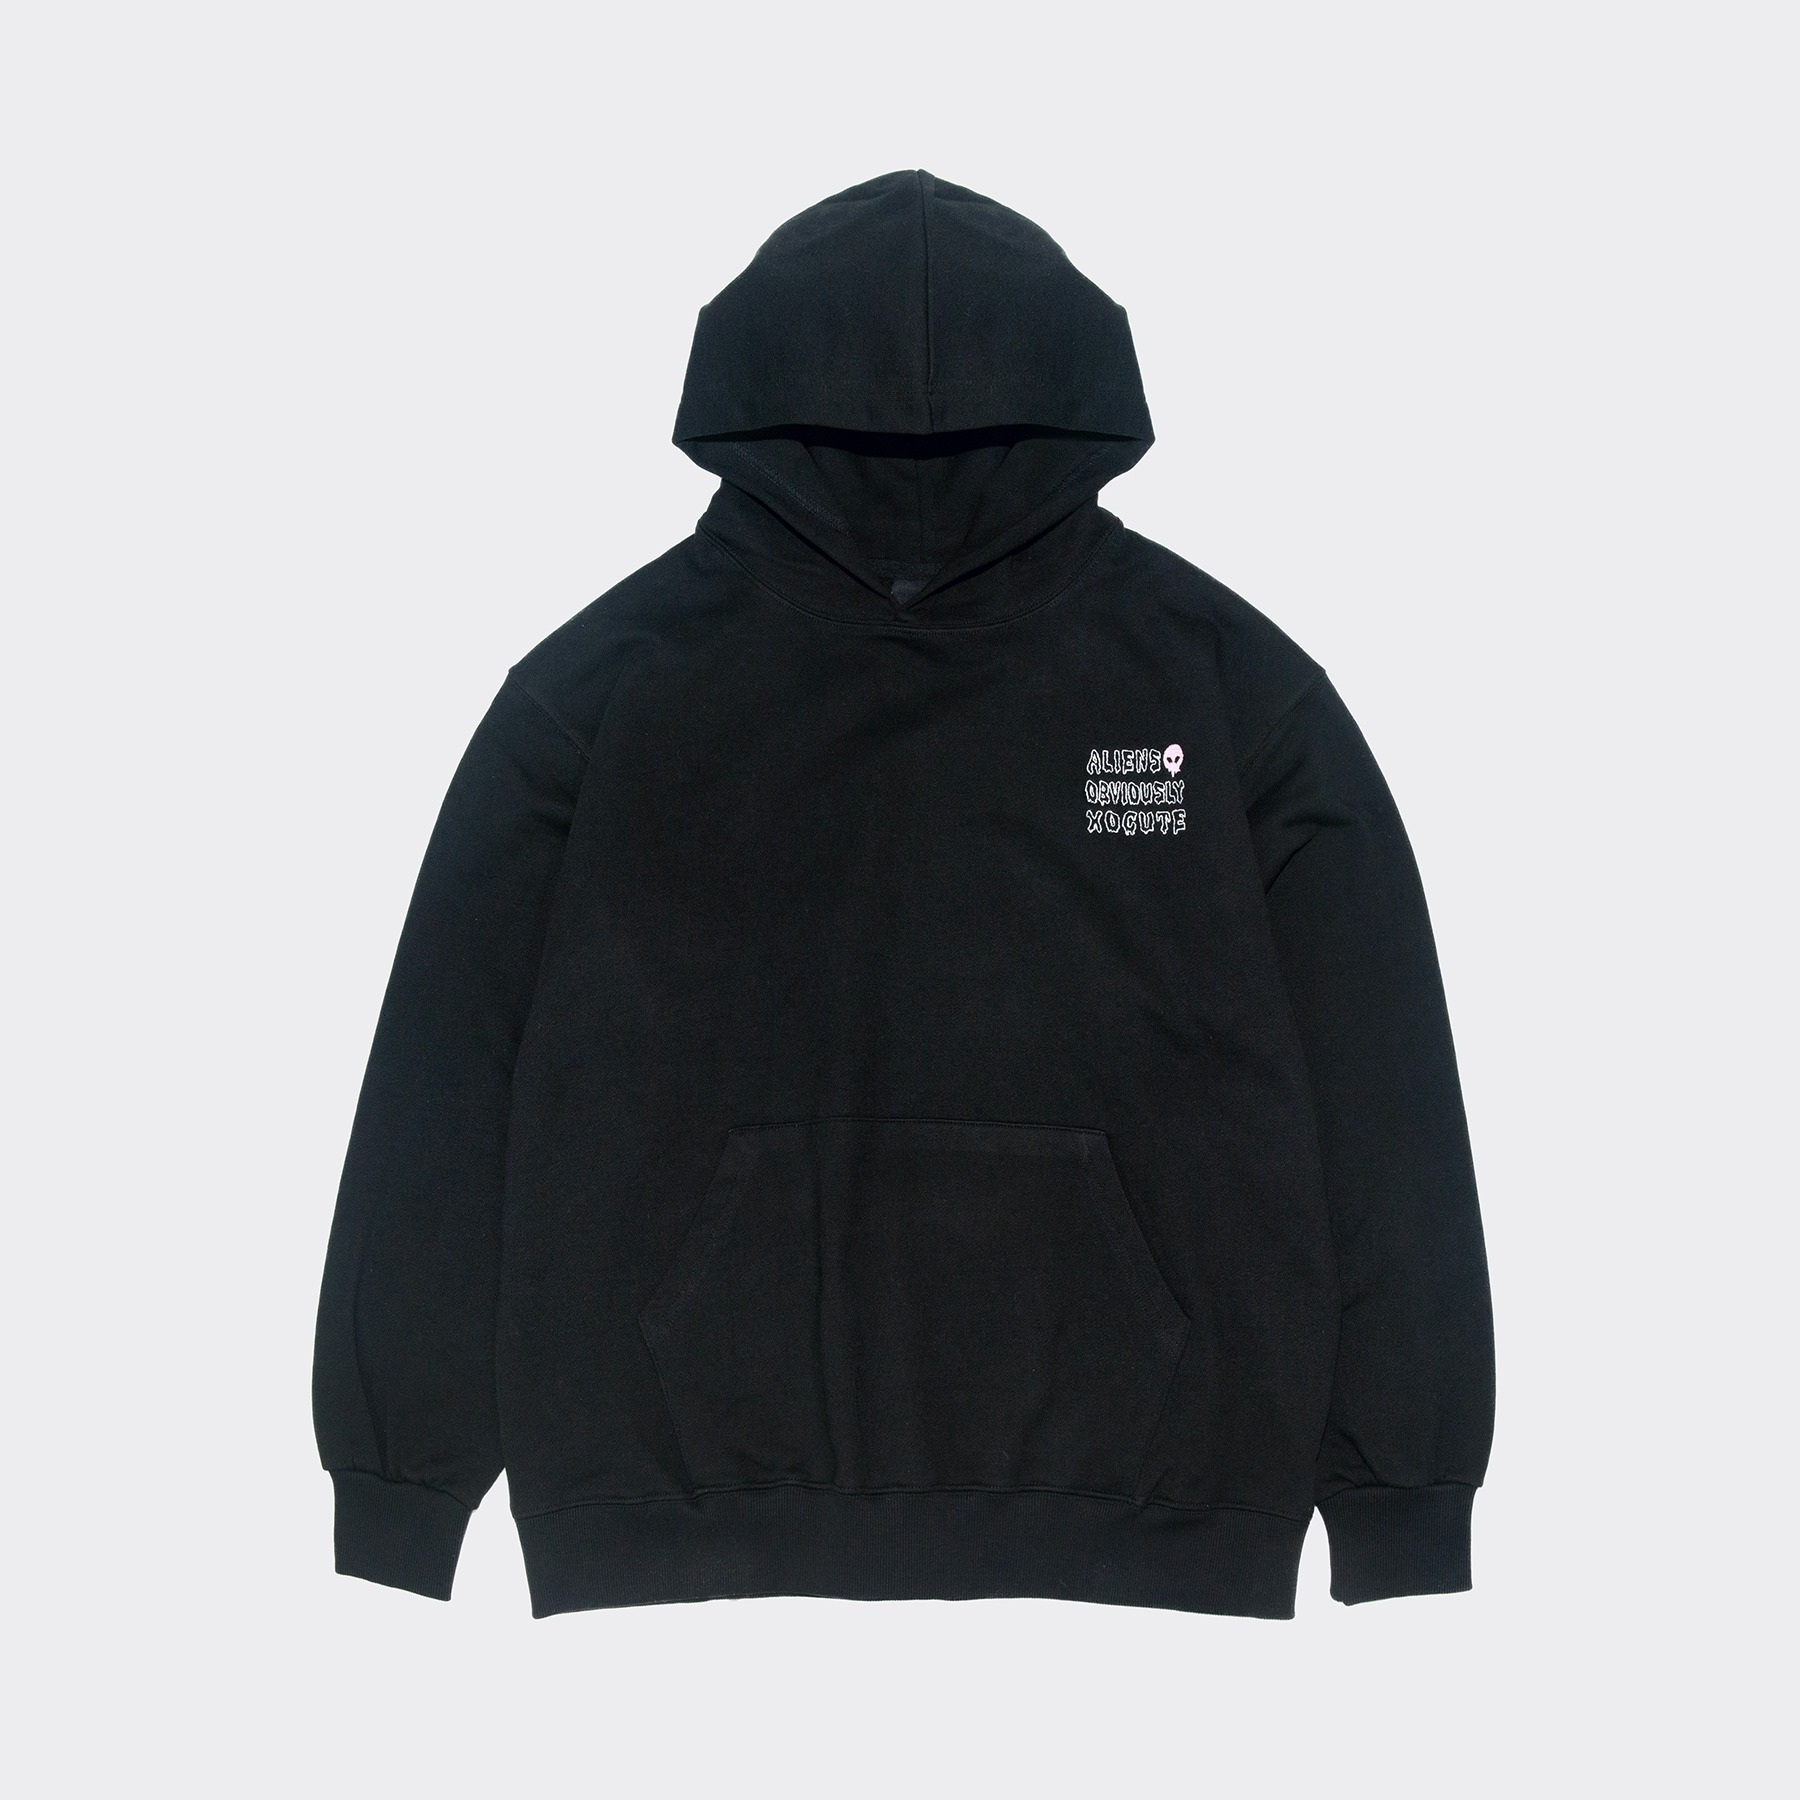 OBVIOUSLY Hoodie(Oversize fit) Black